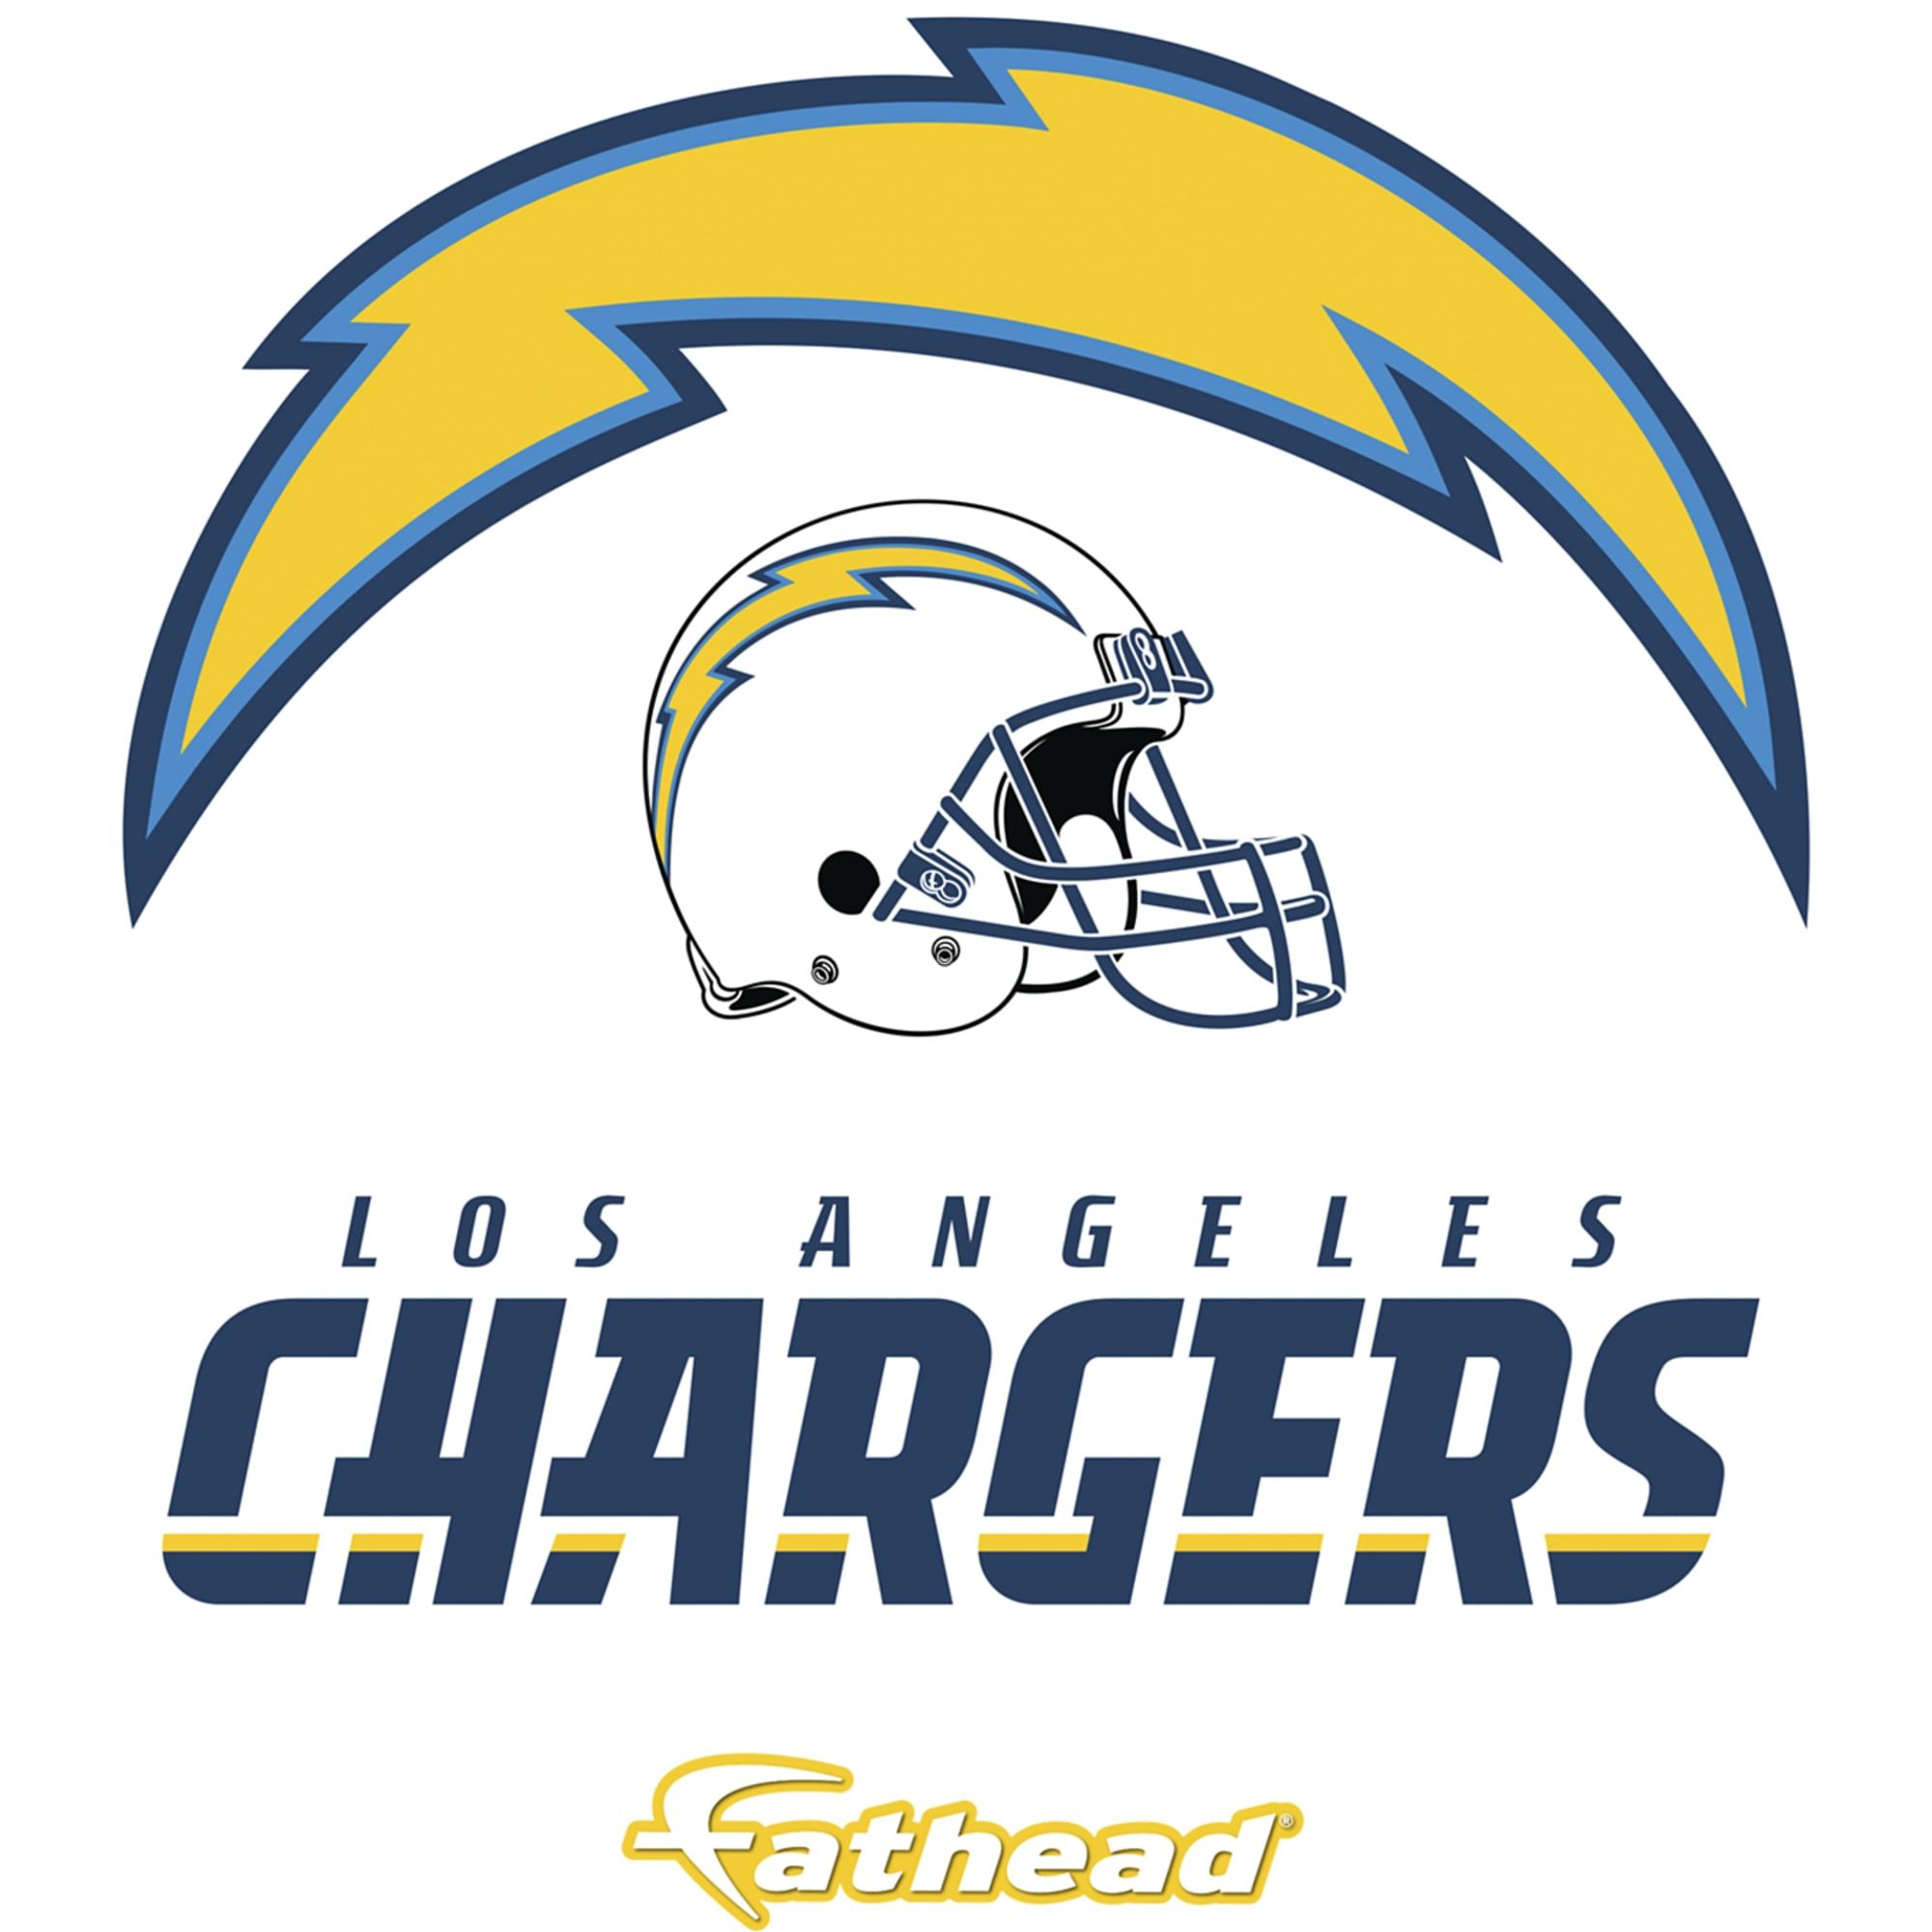 Los Angeles Chargers Logo Large Officially Licensed Nfl Removable Wall Decal Los Angeles Chargers Los Angeles Chargers Logo Chargers